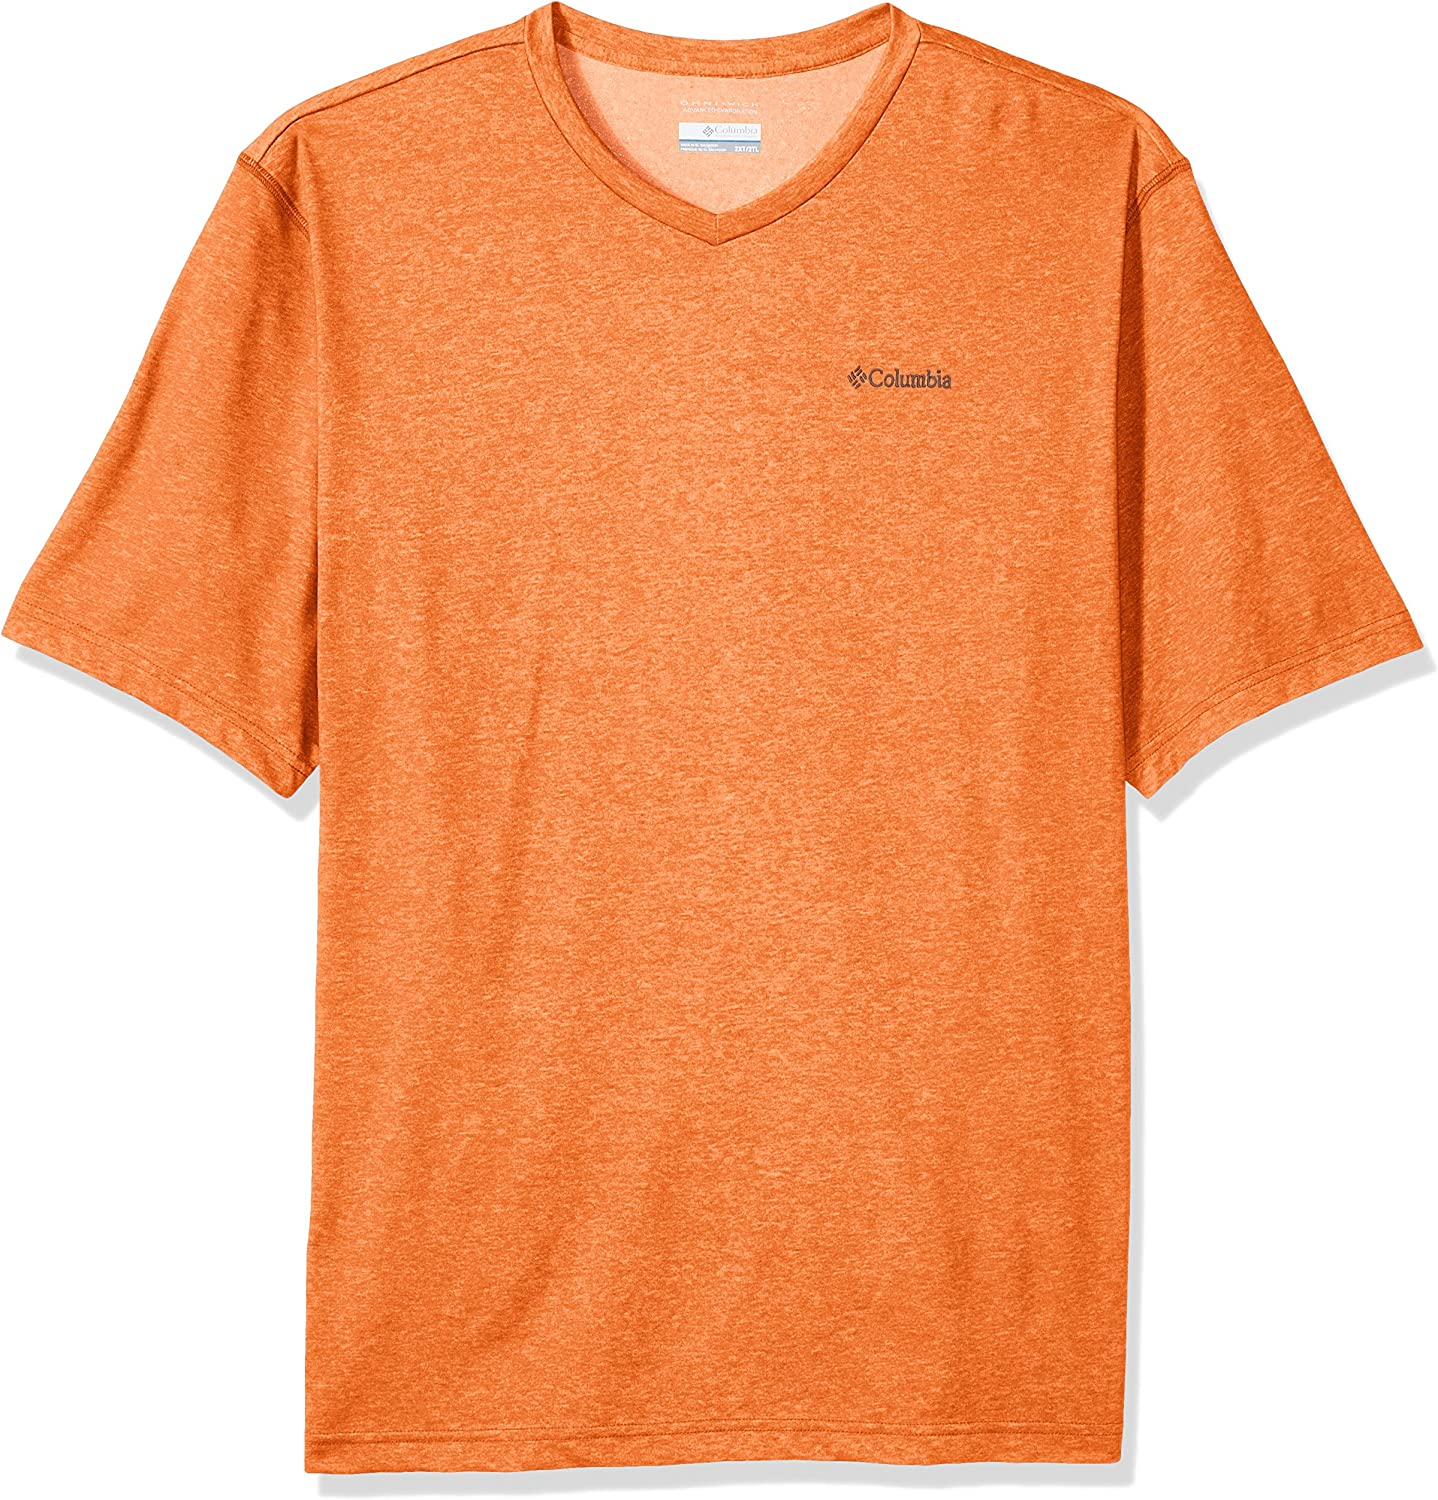 Columbia Thistletown Park Big /& Tall V-Neck